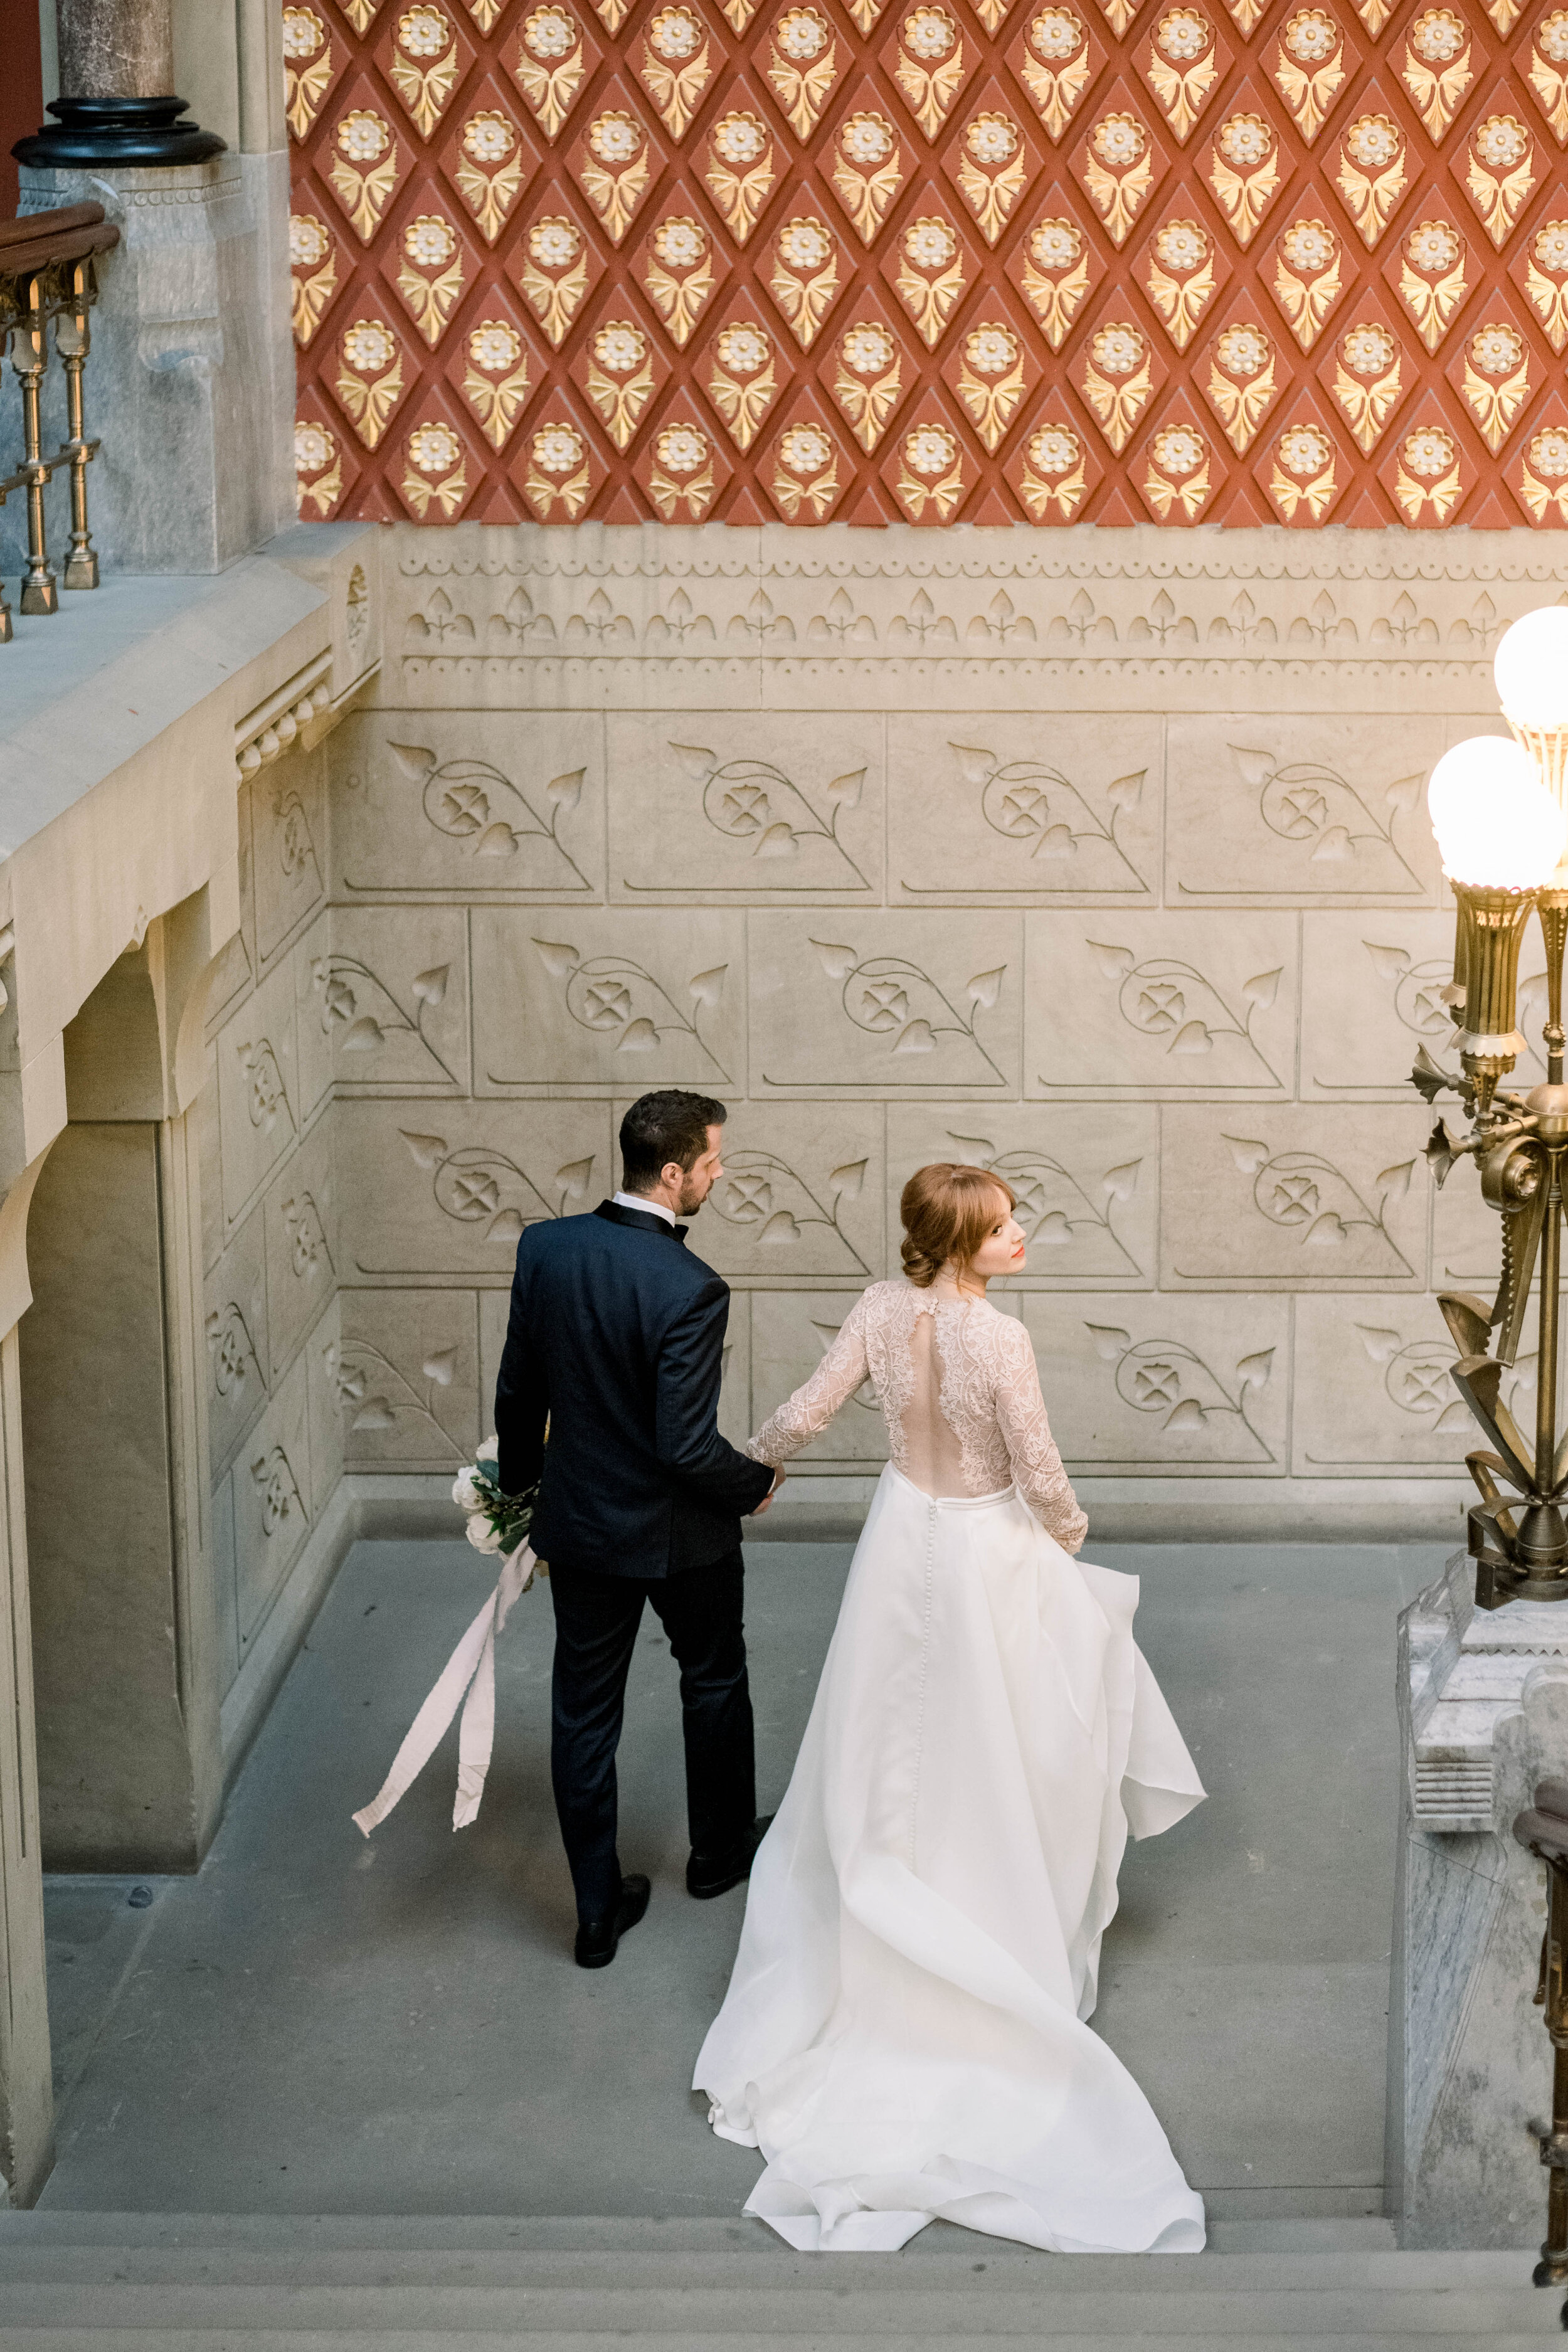 Pennsylvania academy of the arts+pafa+pafa weddings+philly wedding+fall wedding+modern yet timeless wedding+museum+photo